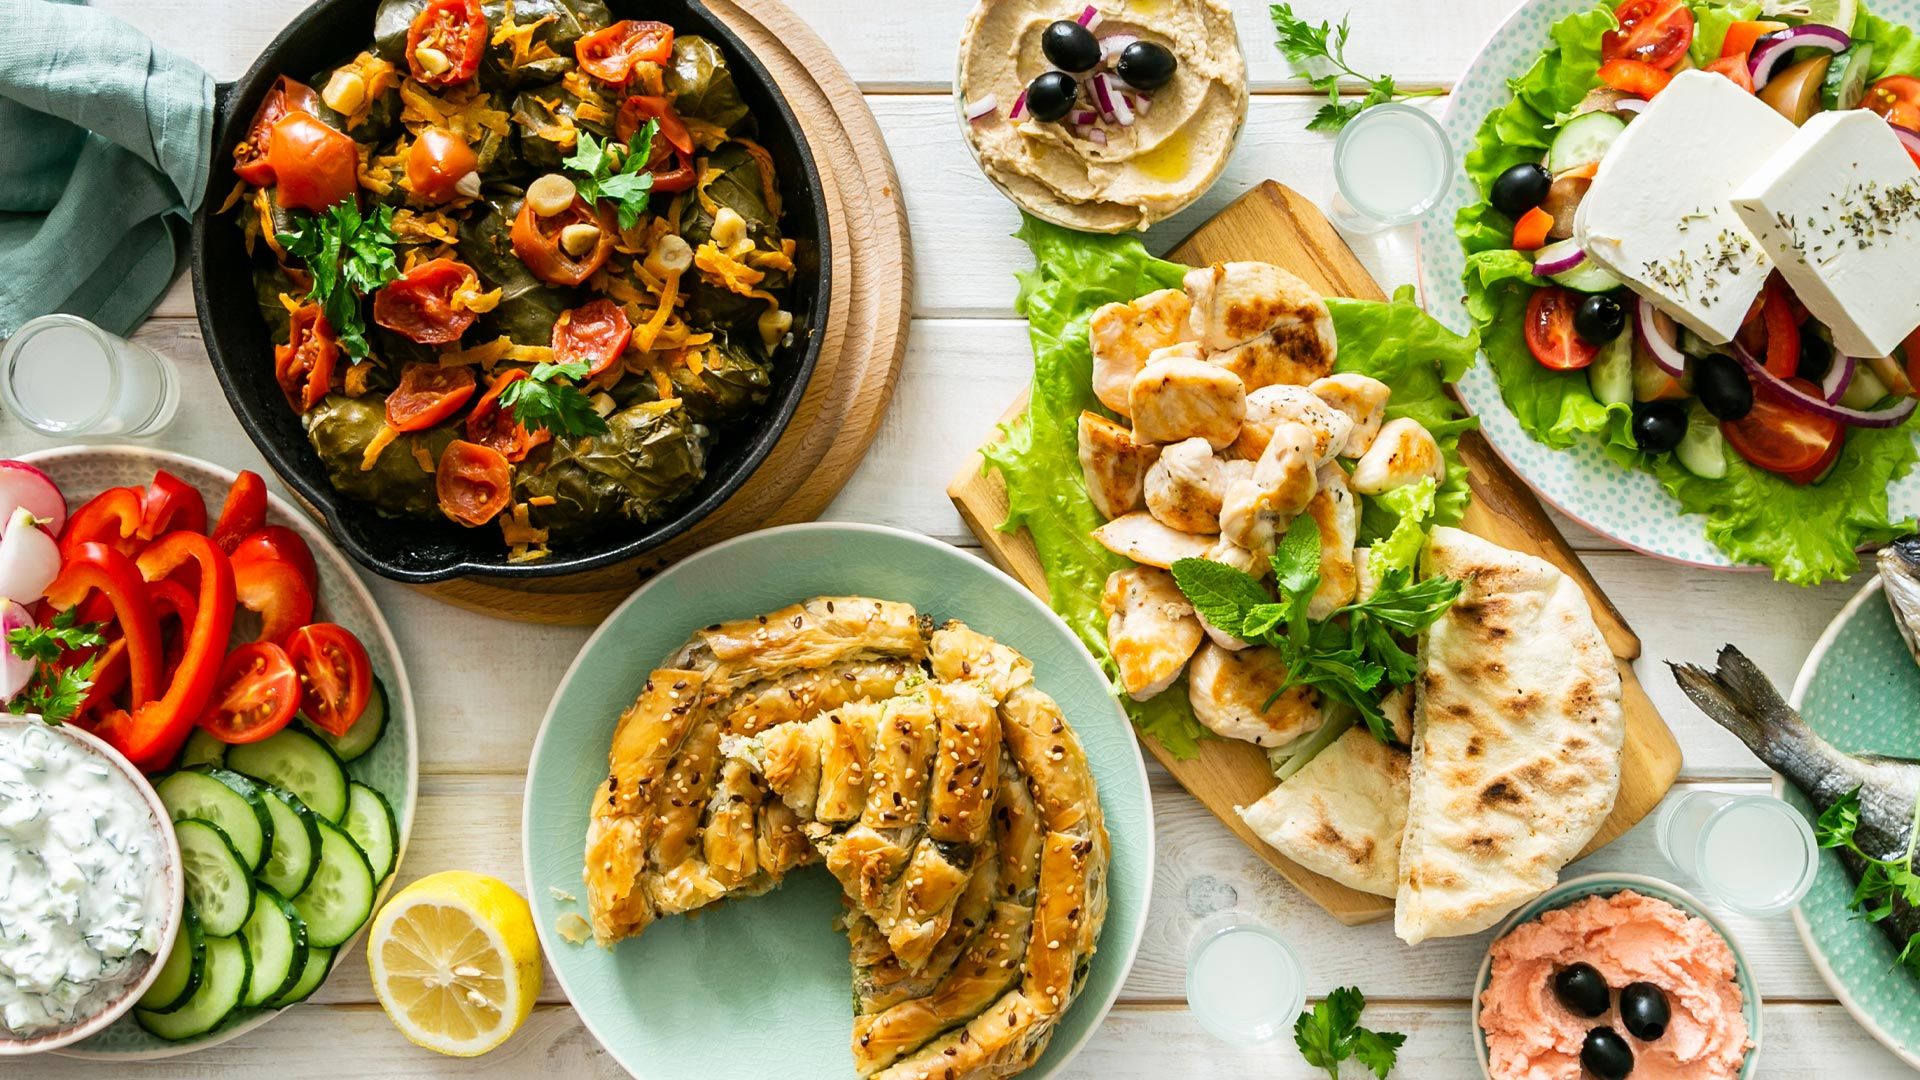 White Wood table with vibrant Greek Food, Salad, Pastry, Chicken and Yogurt Dip